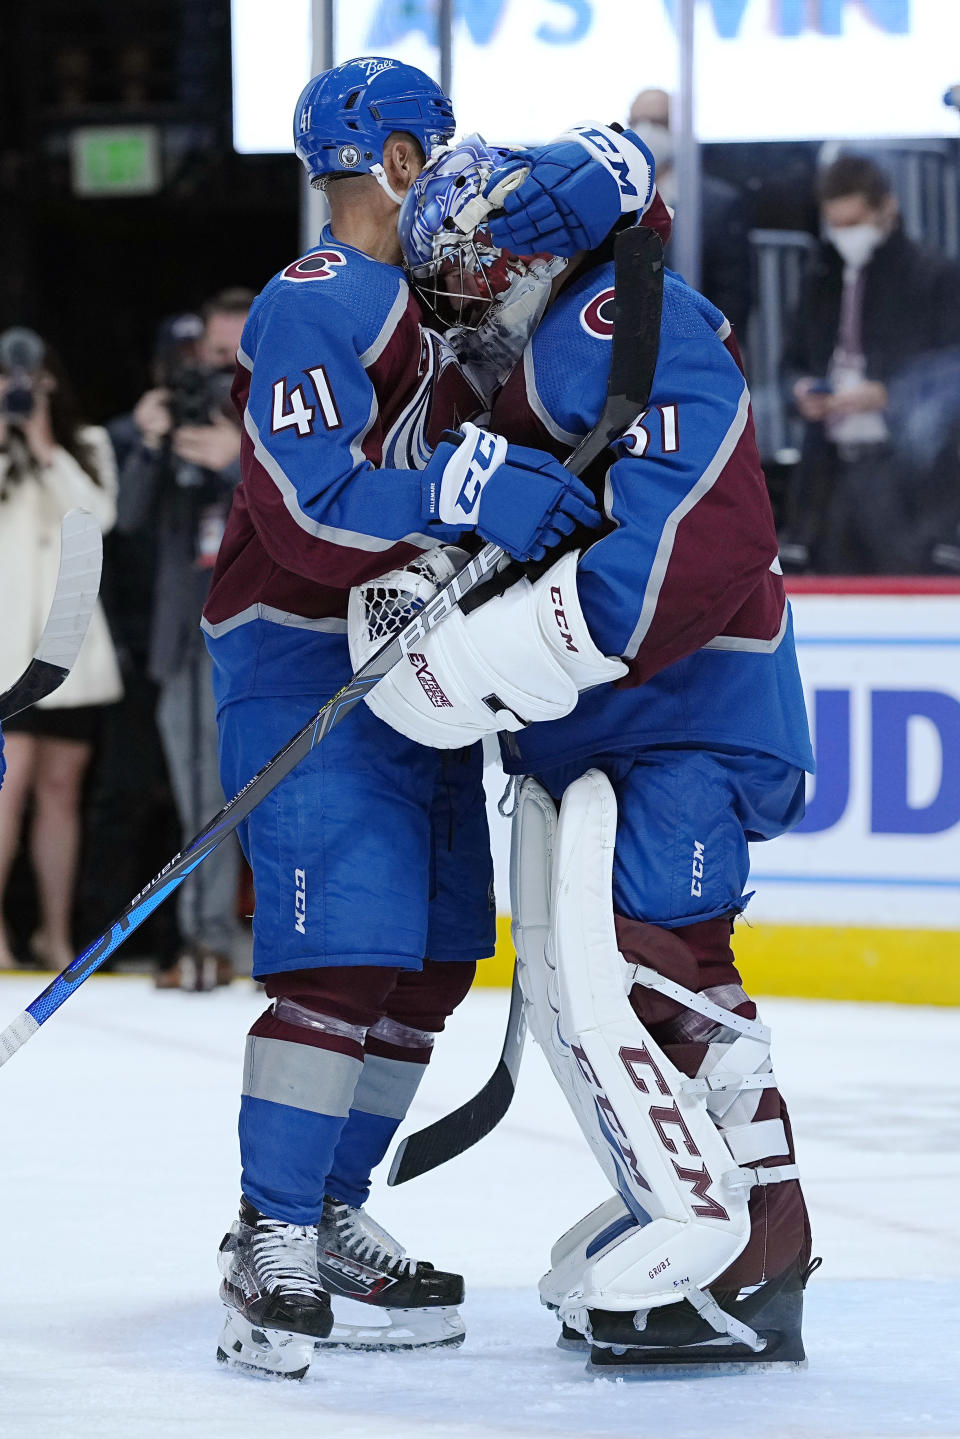 Colorado Avalanche center Pierre-Edouard Bellemare (41) and goaltender Philipp Grubauer (31) celebrate a win against the Vegas Golden Knights after Game 1 of an NHL hockey Stanley Cup second-round playoff series Sunday, May 30, 2021, in Denver. (AP Photo/Jack Dempsey)